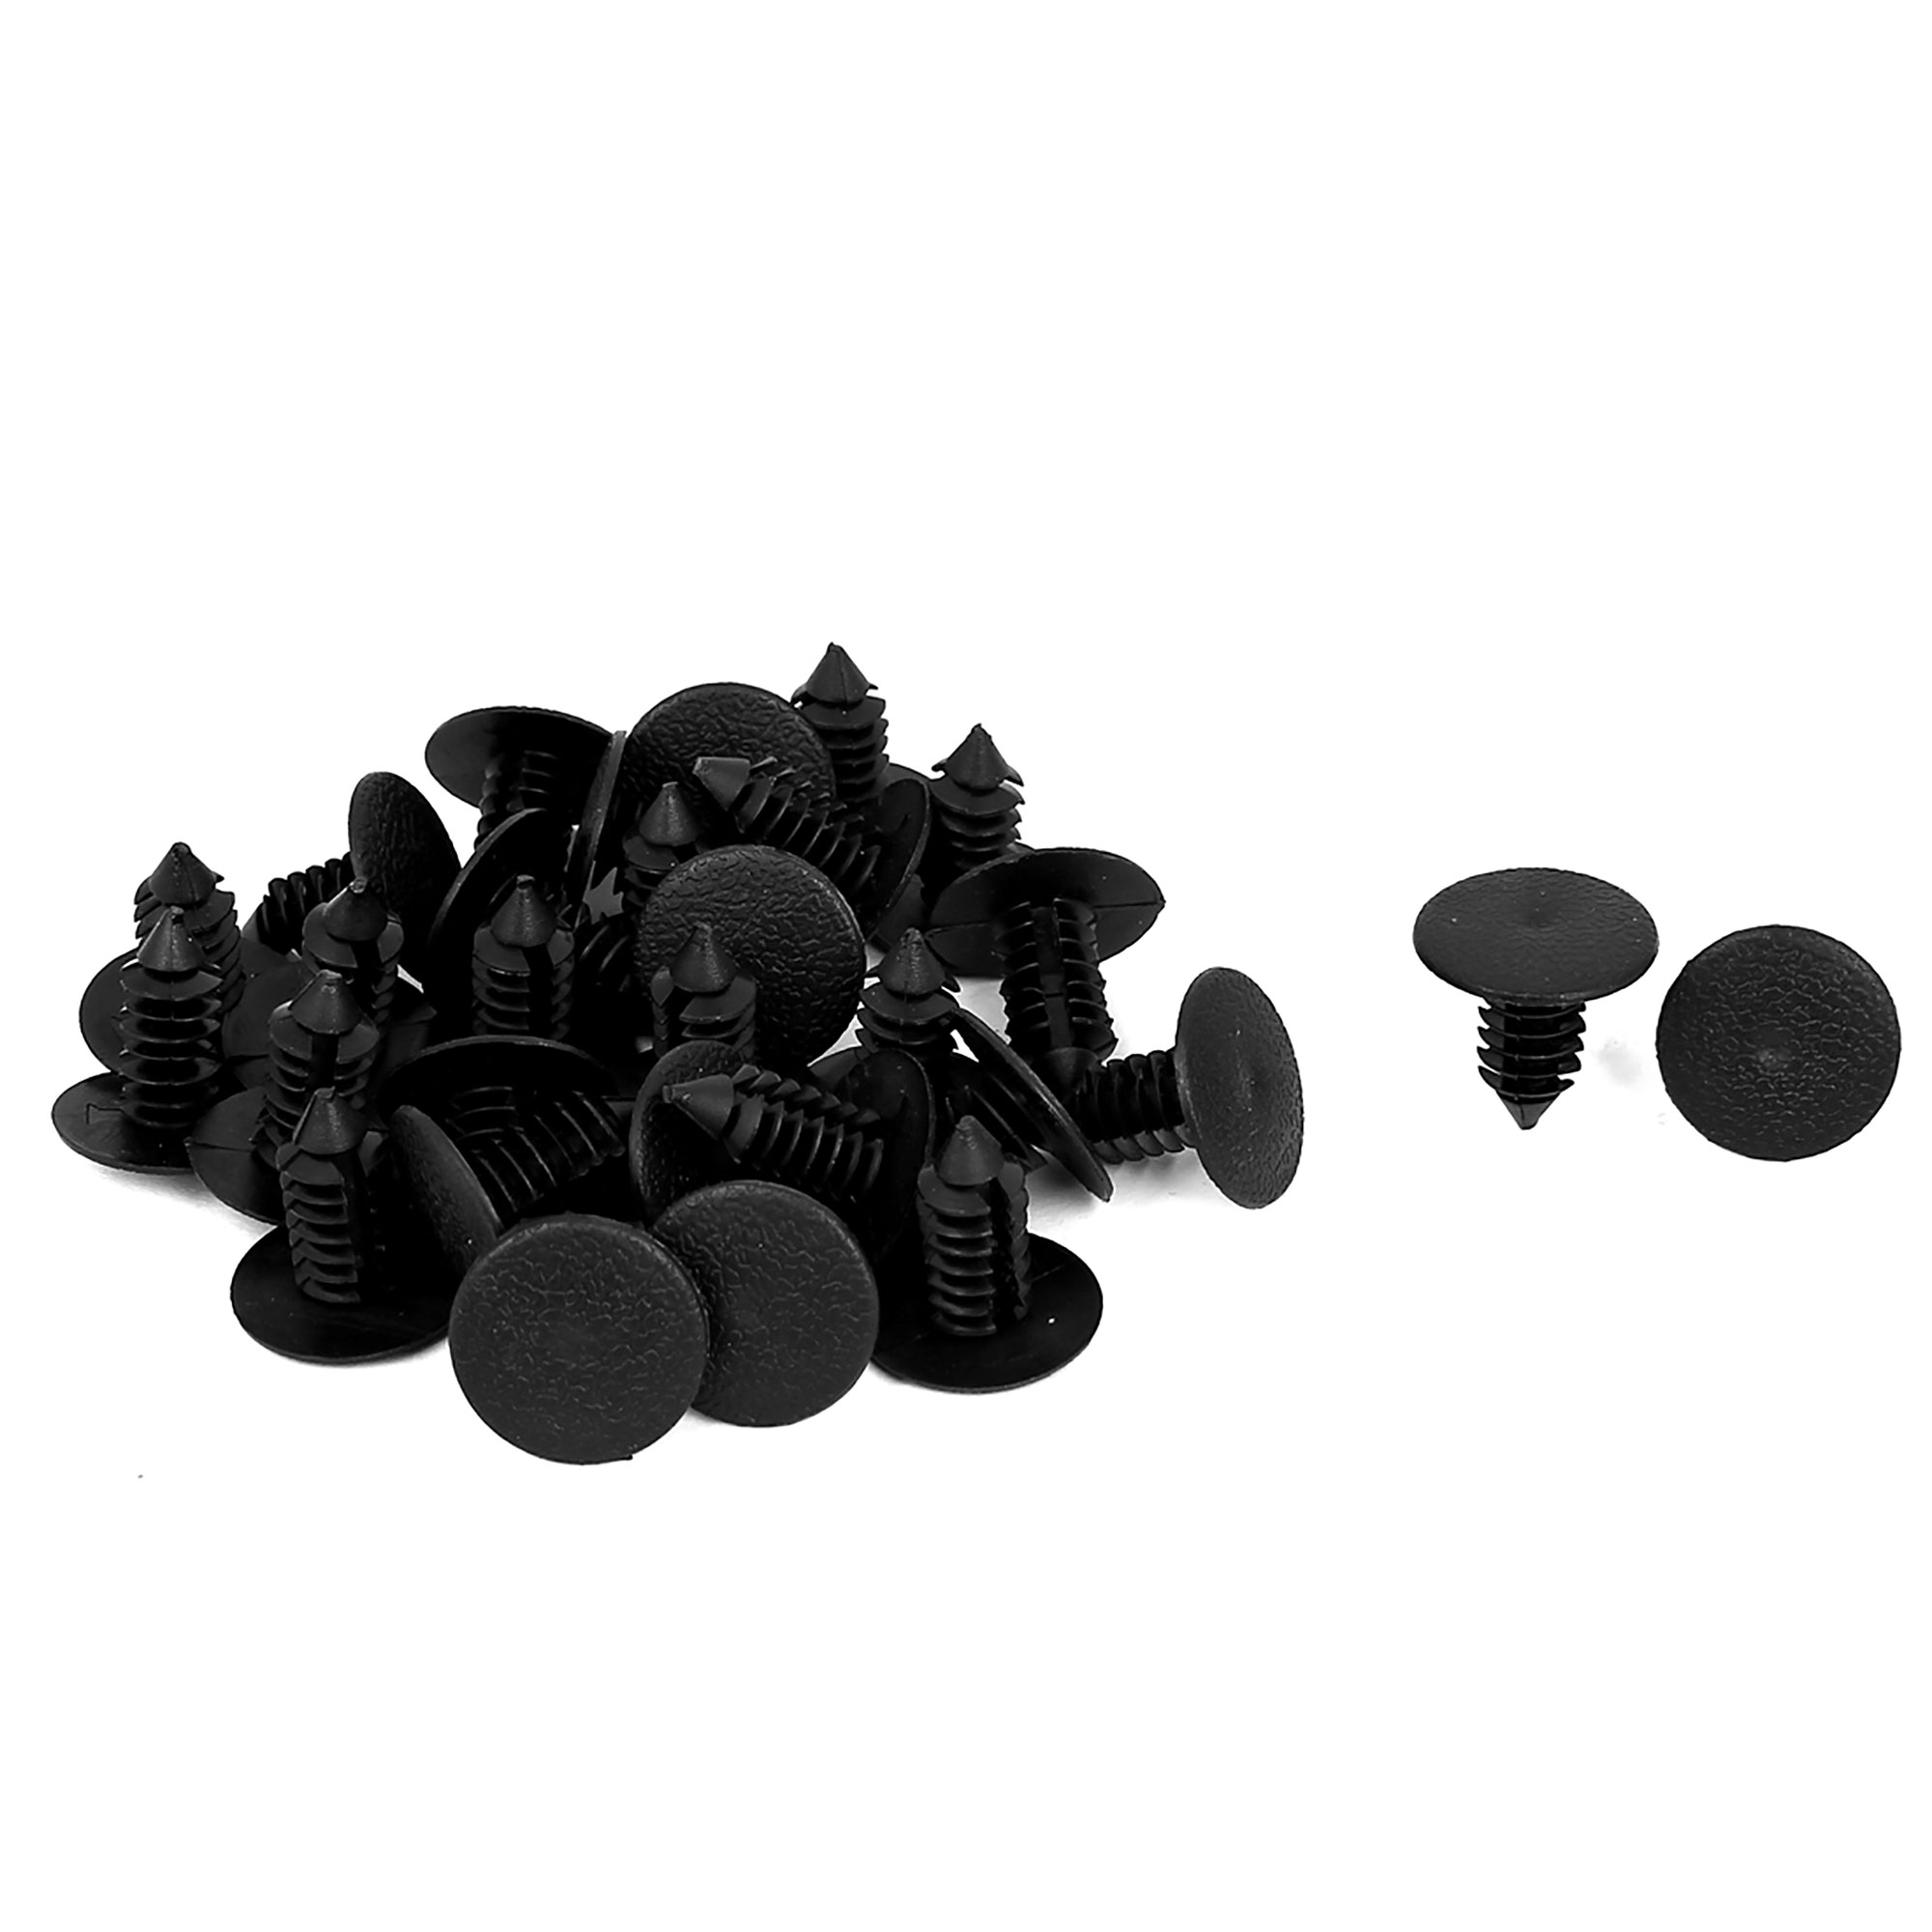 9mm x 8mm Hole Plastic Car Bumper Fender Fir Tree Clips Rivets Retainer 30pcs